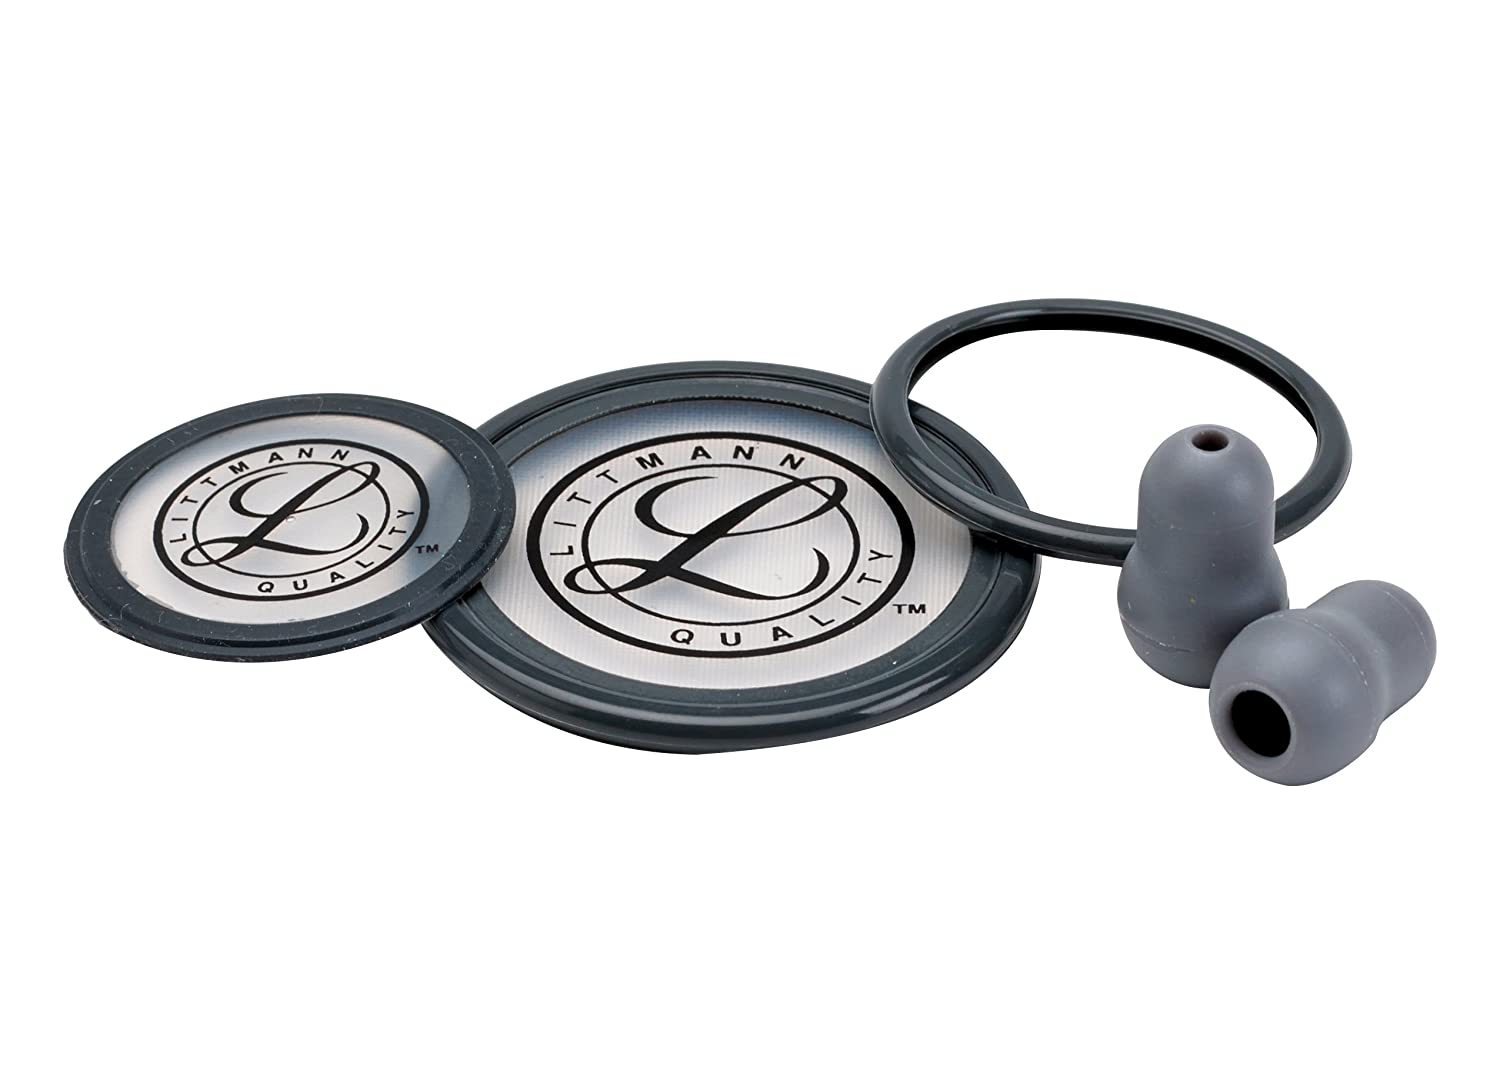 3M Littmann 40004 Cardiology III Stethoscope Spare Parts Kit, Grey